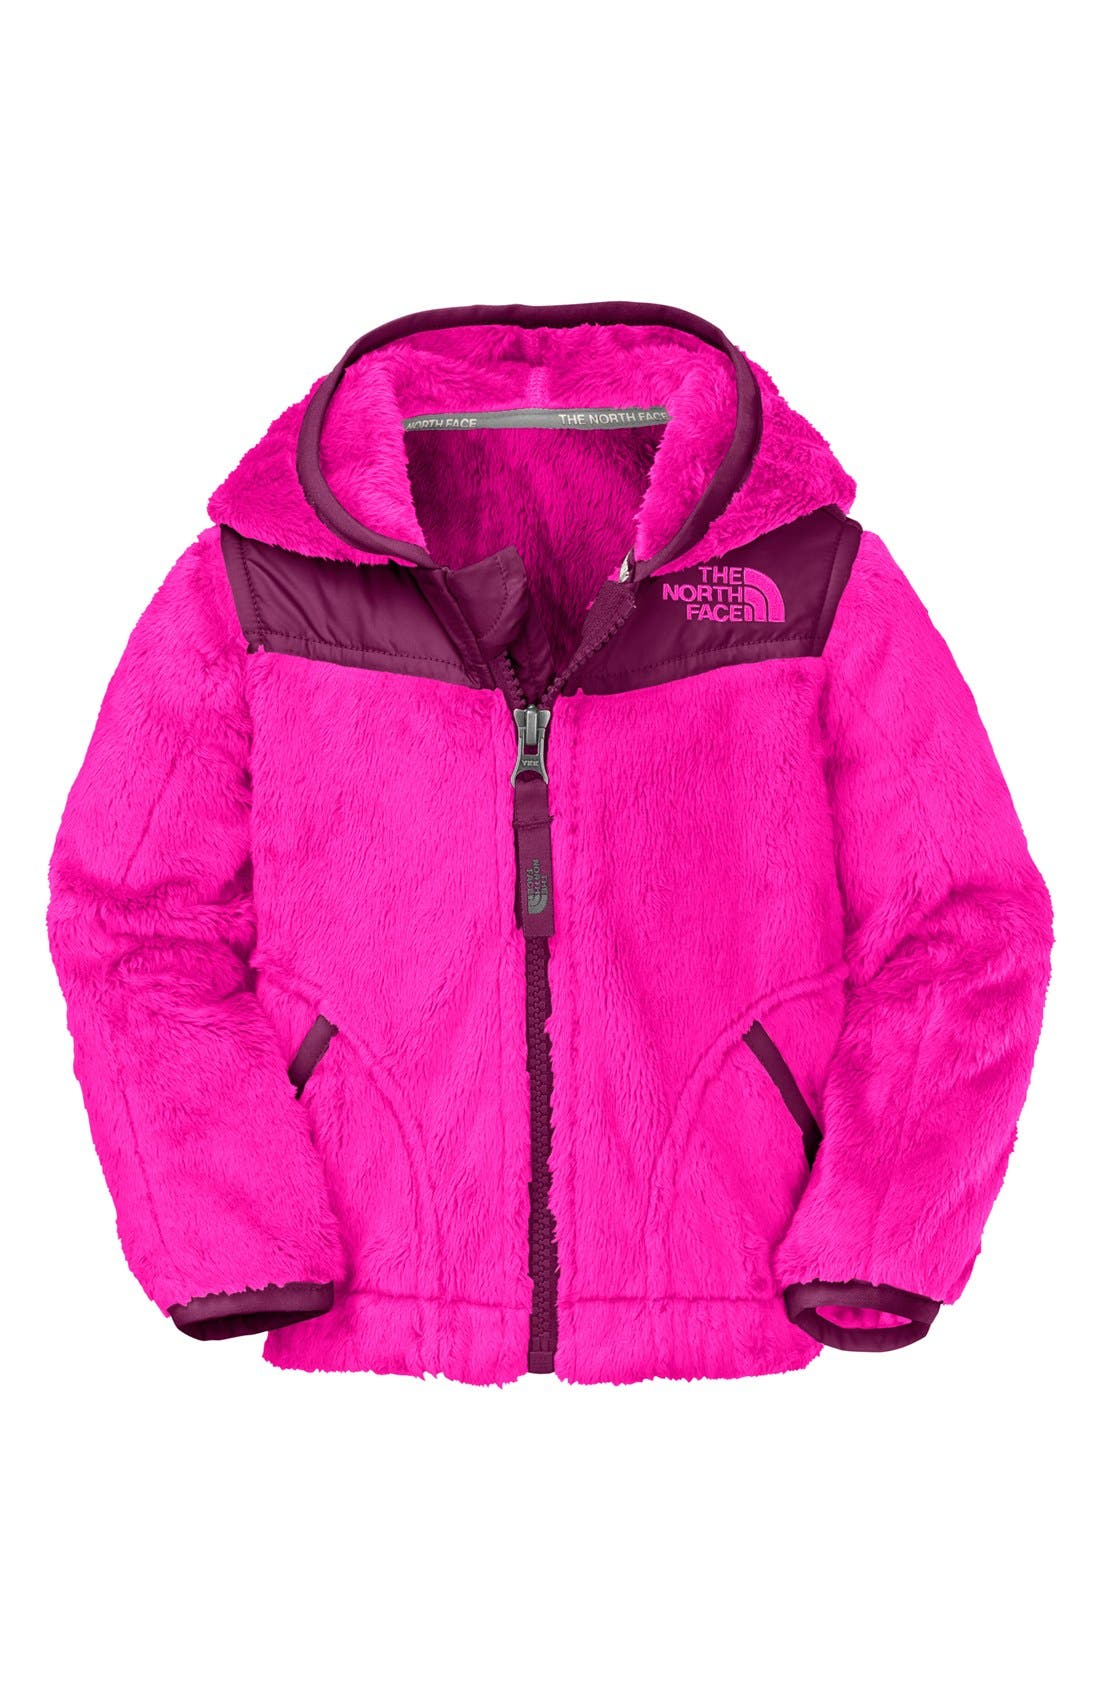 Main Image - The North Face 'Oso' Fleece Hoodie (Baby Girls)